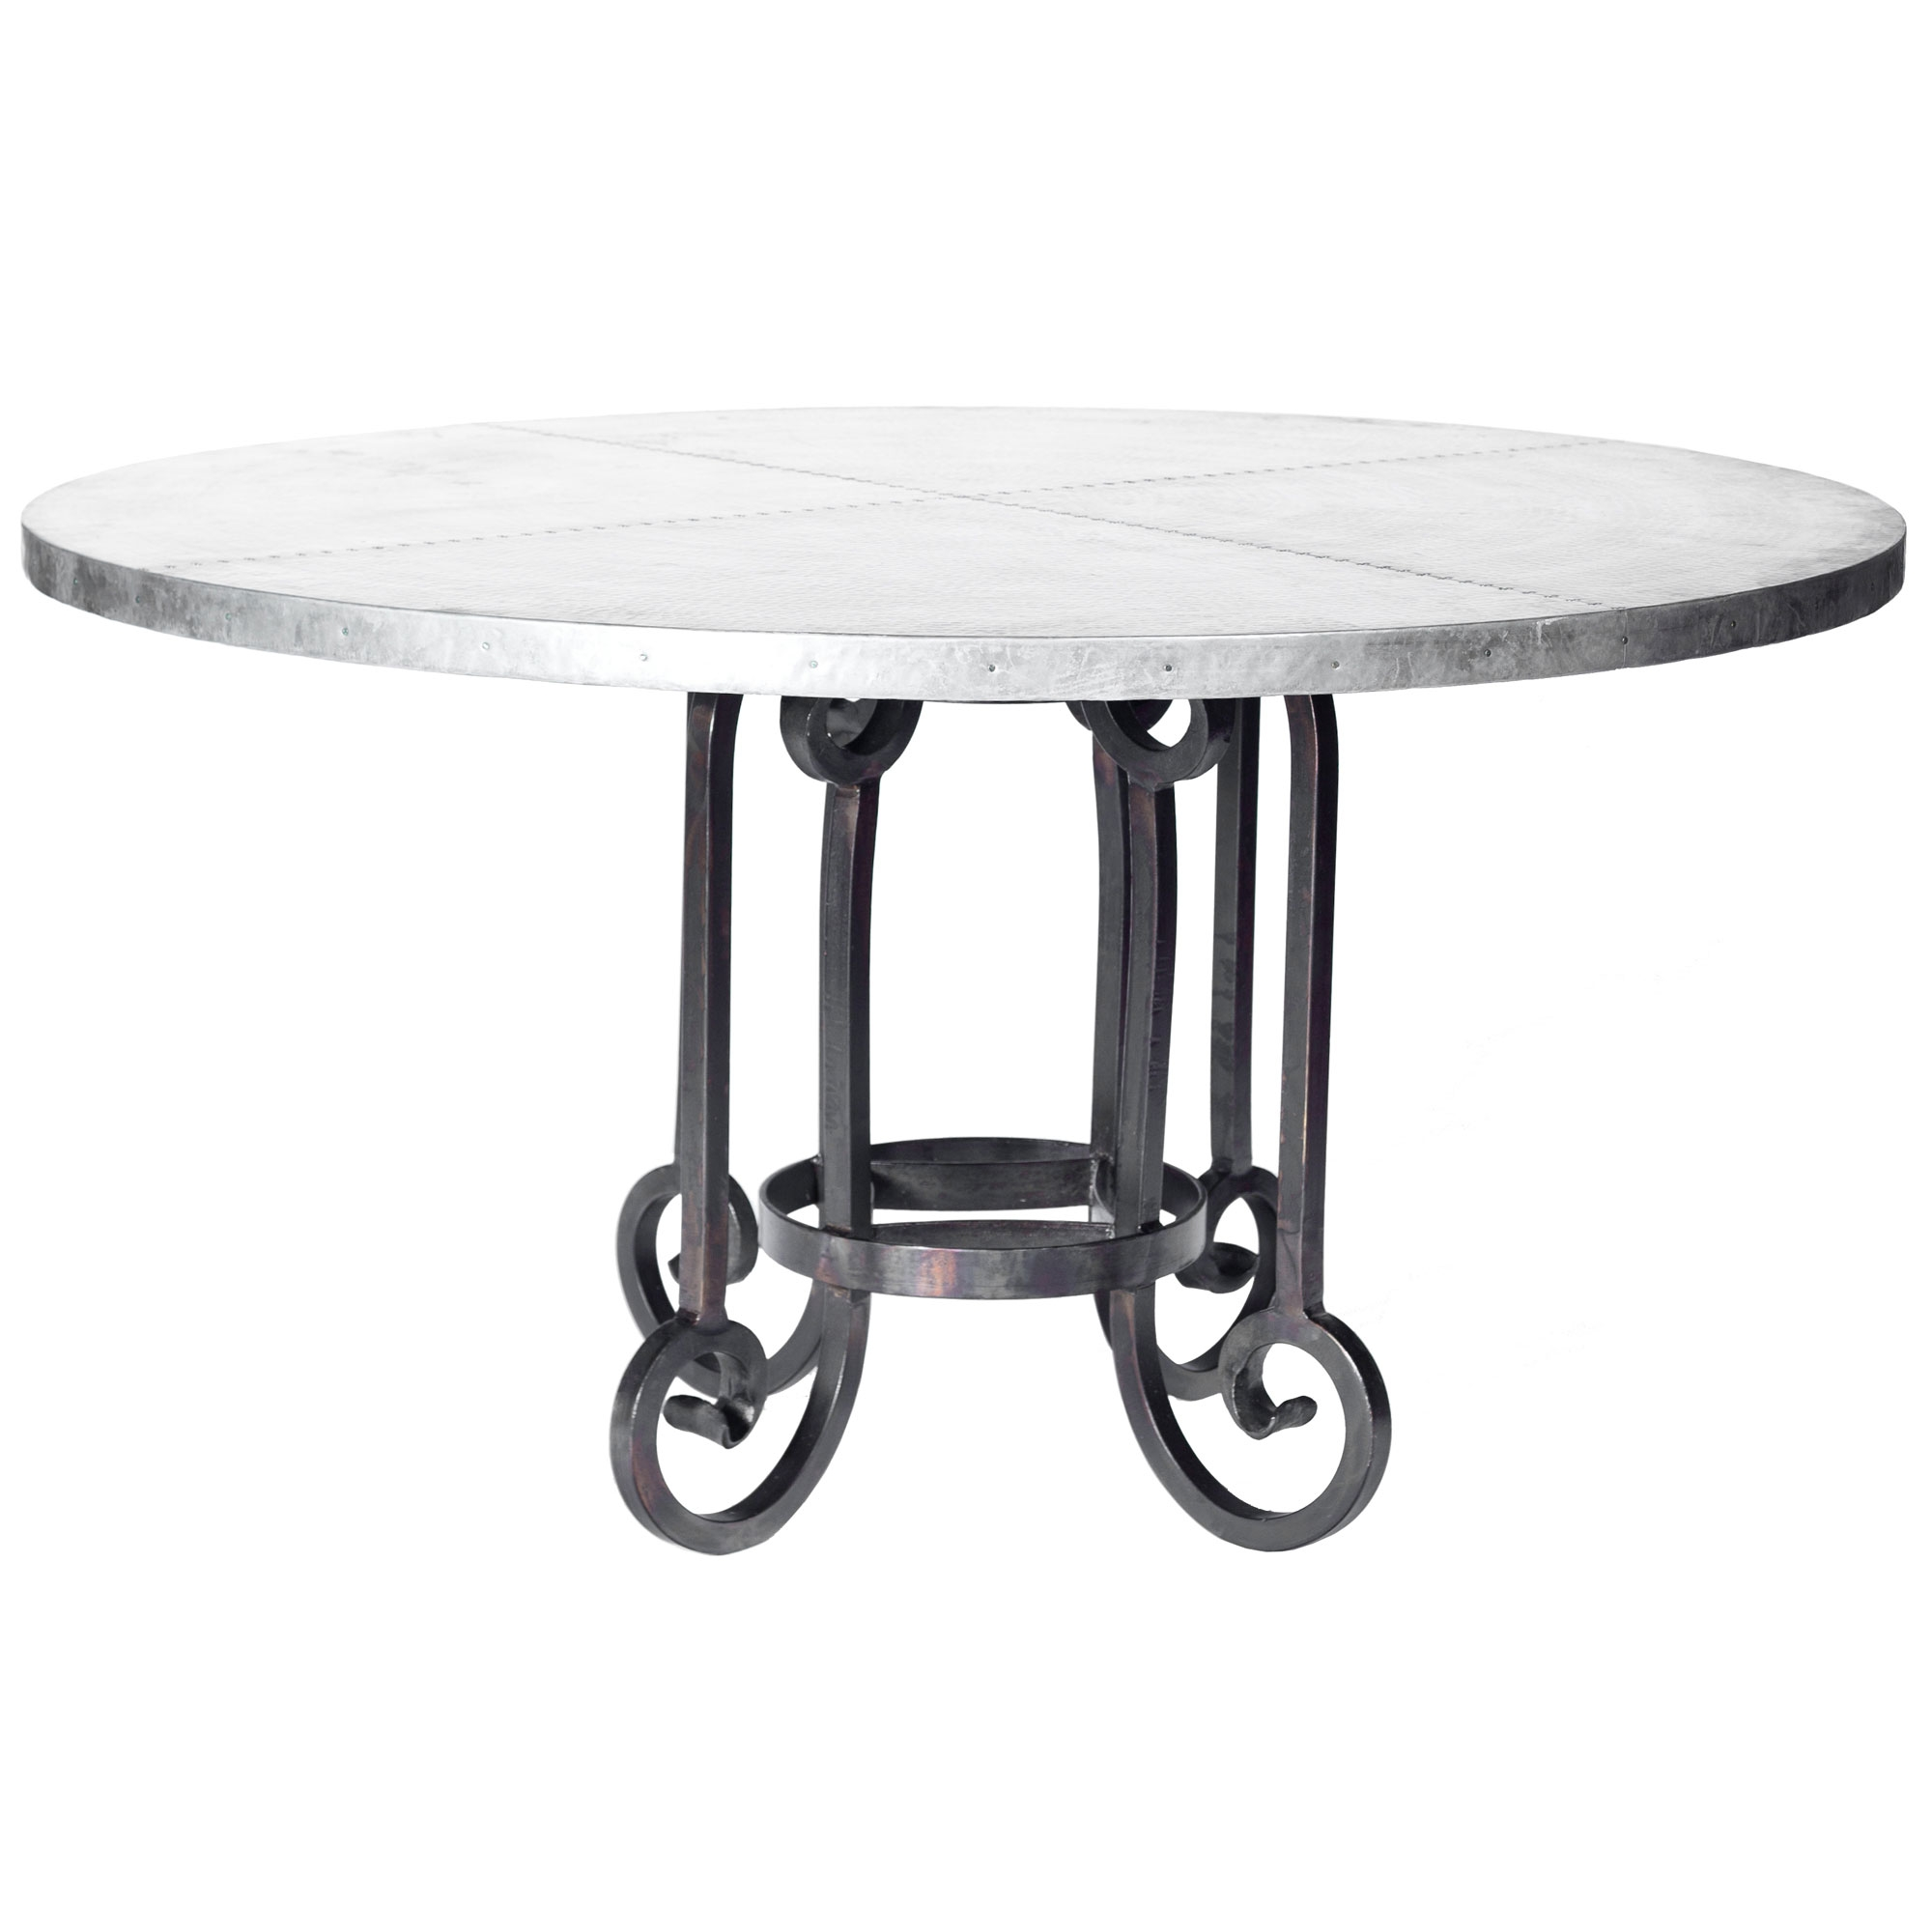 Picture of: Curled Leg Iron Dining Table With 48 In Hammered Zinc Top